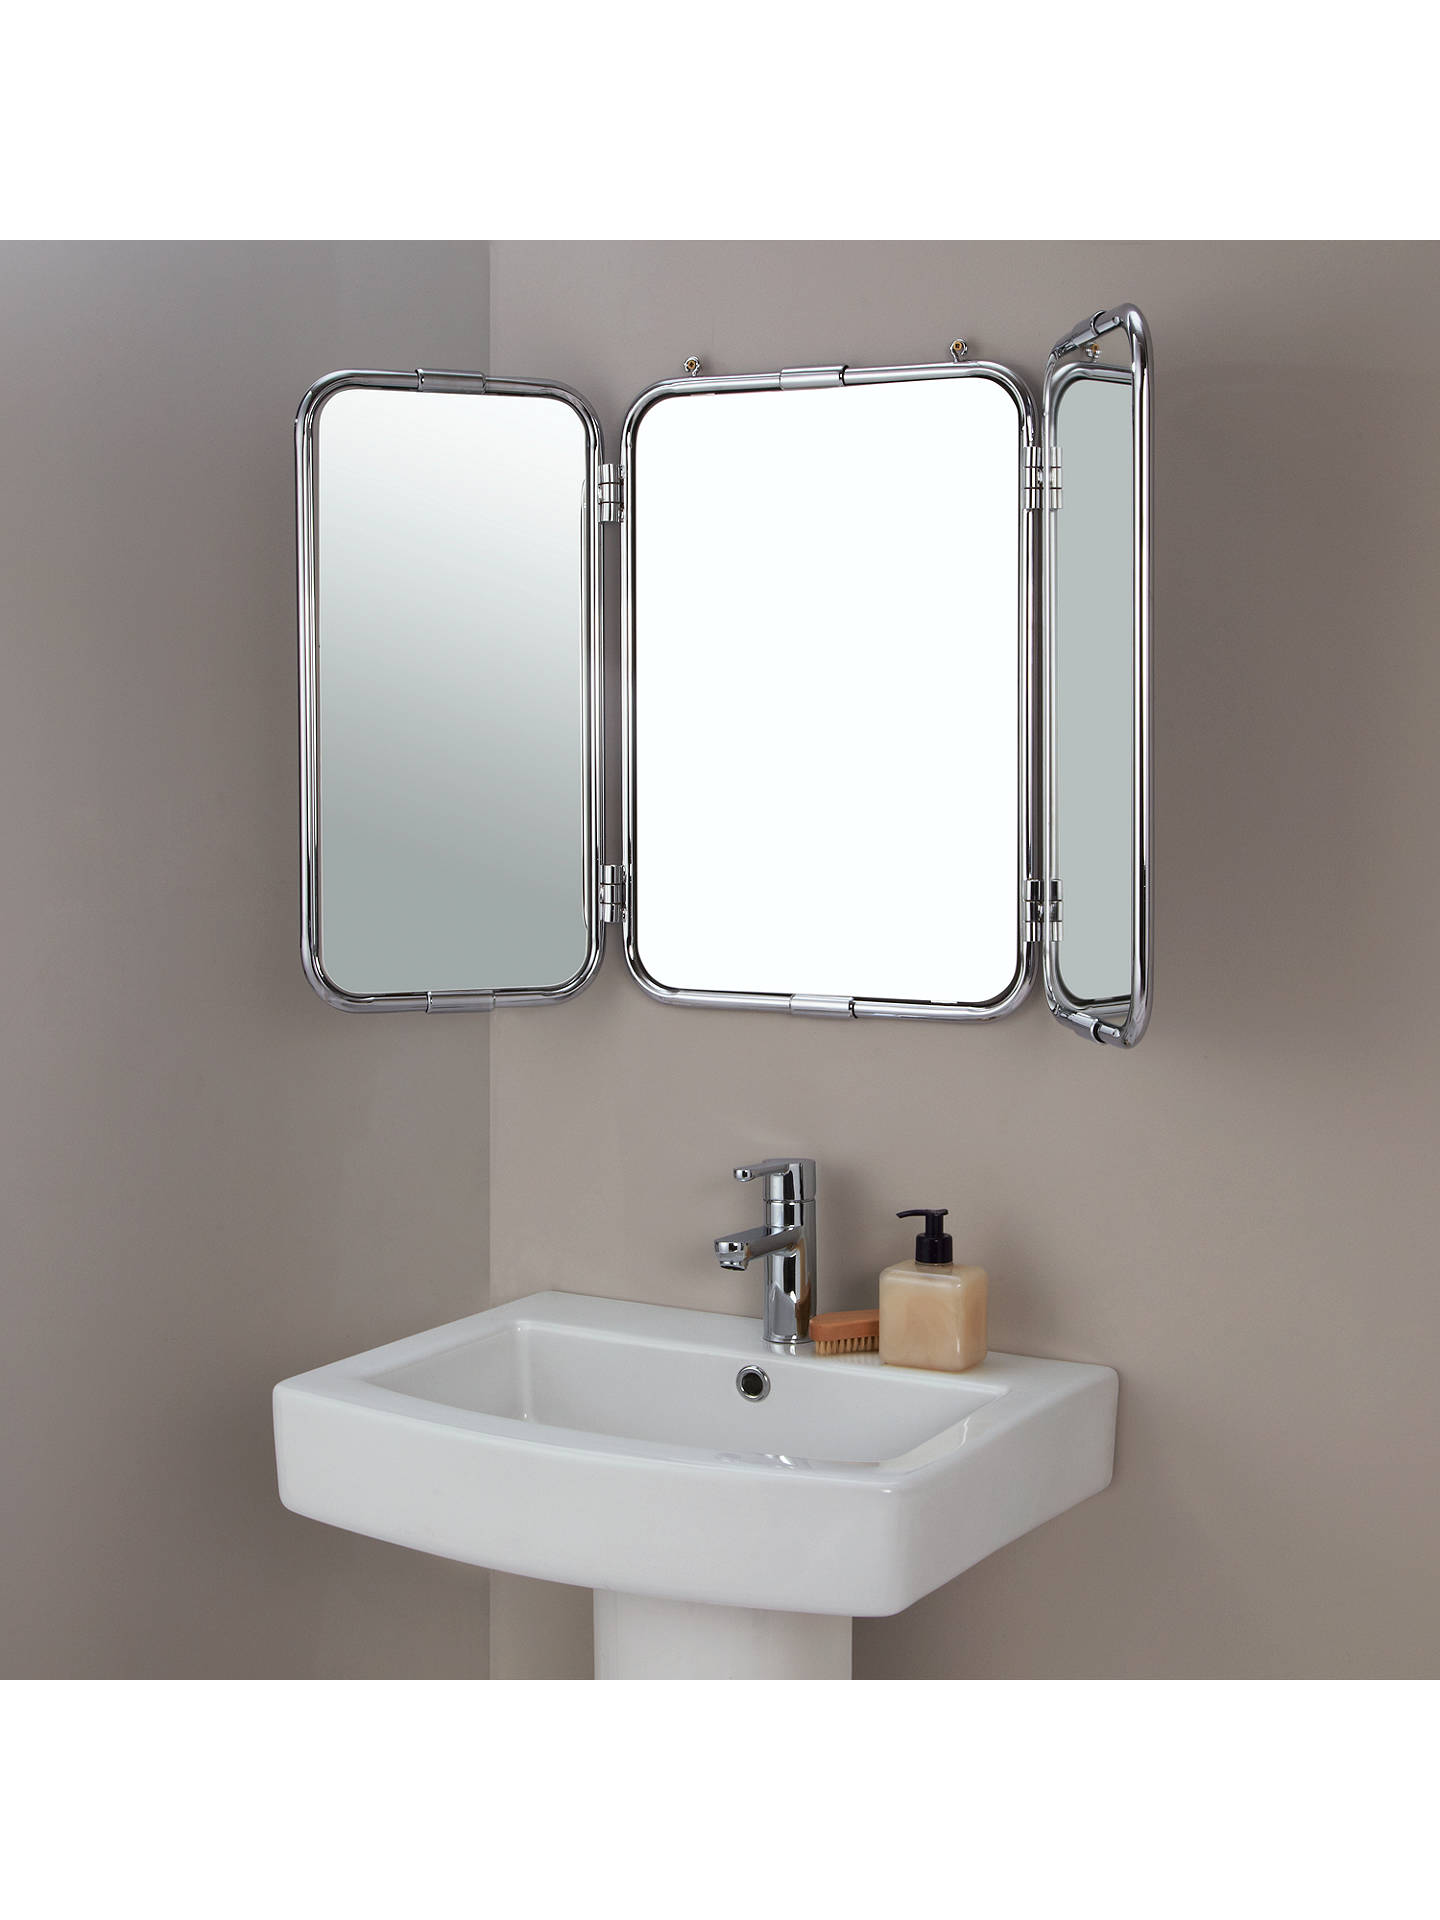 john lewis restoration triple bathroom wall mirror at john. Black Bedroom Furniture Sets. Home Design Ideas